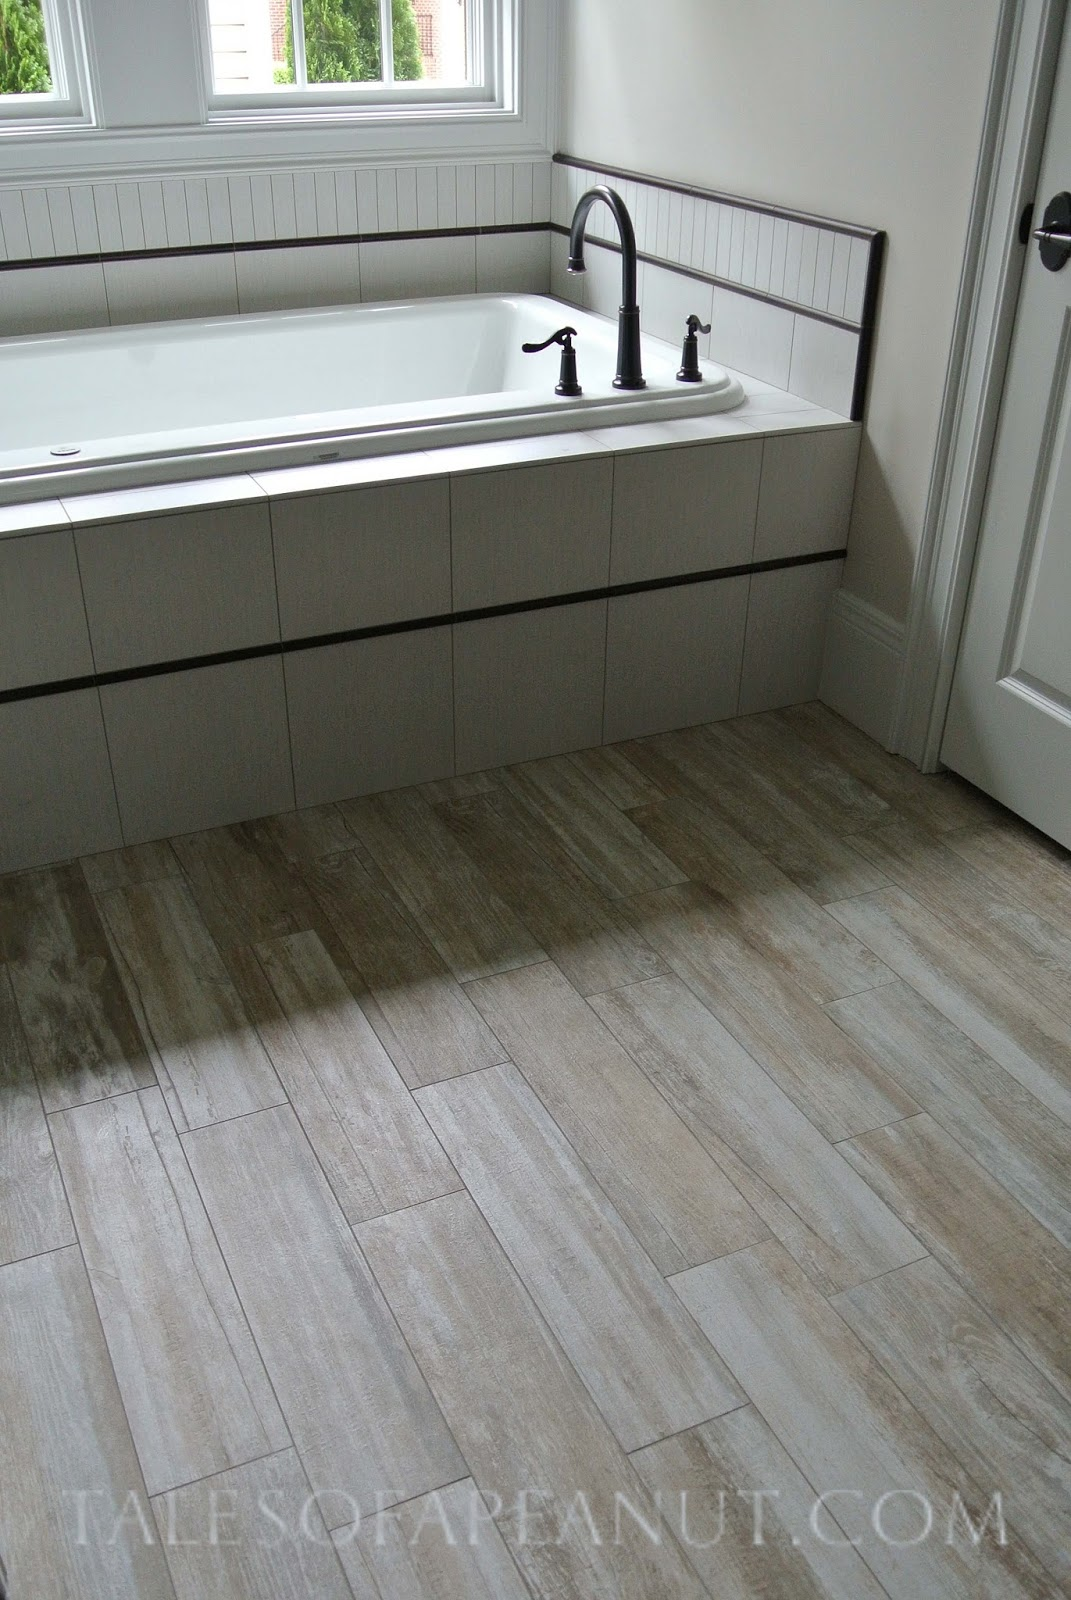 Bathrooms With Wood Tile Floors Home Decoration Club